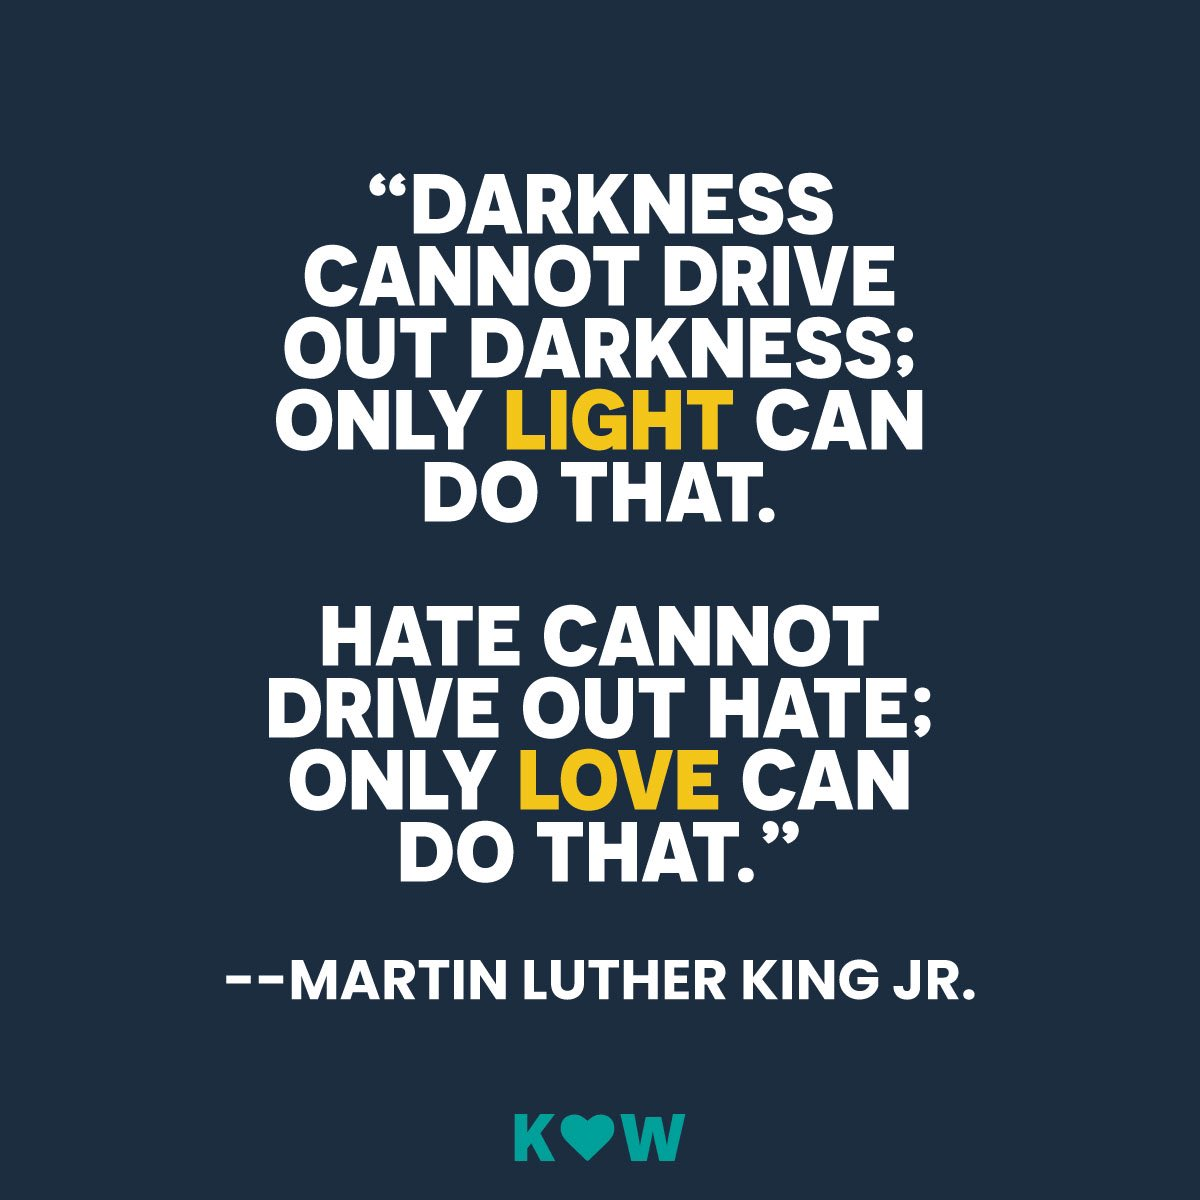 Today we honor the legacy of Martin Luther King Jr., whose message of kindness continues to inspire around the world.  #KindnessWin